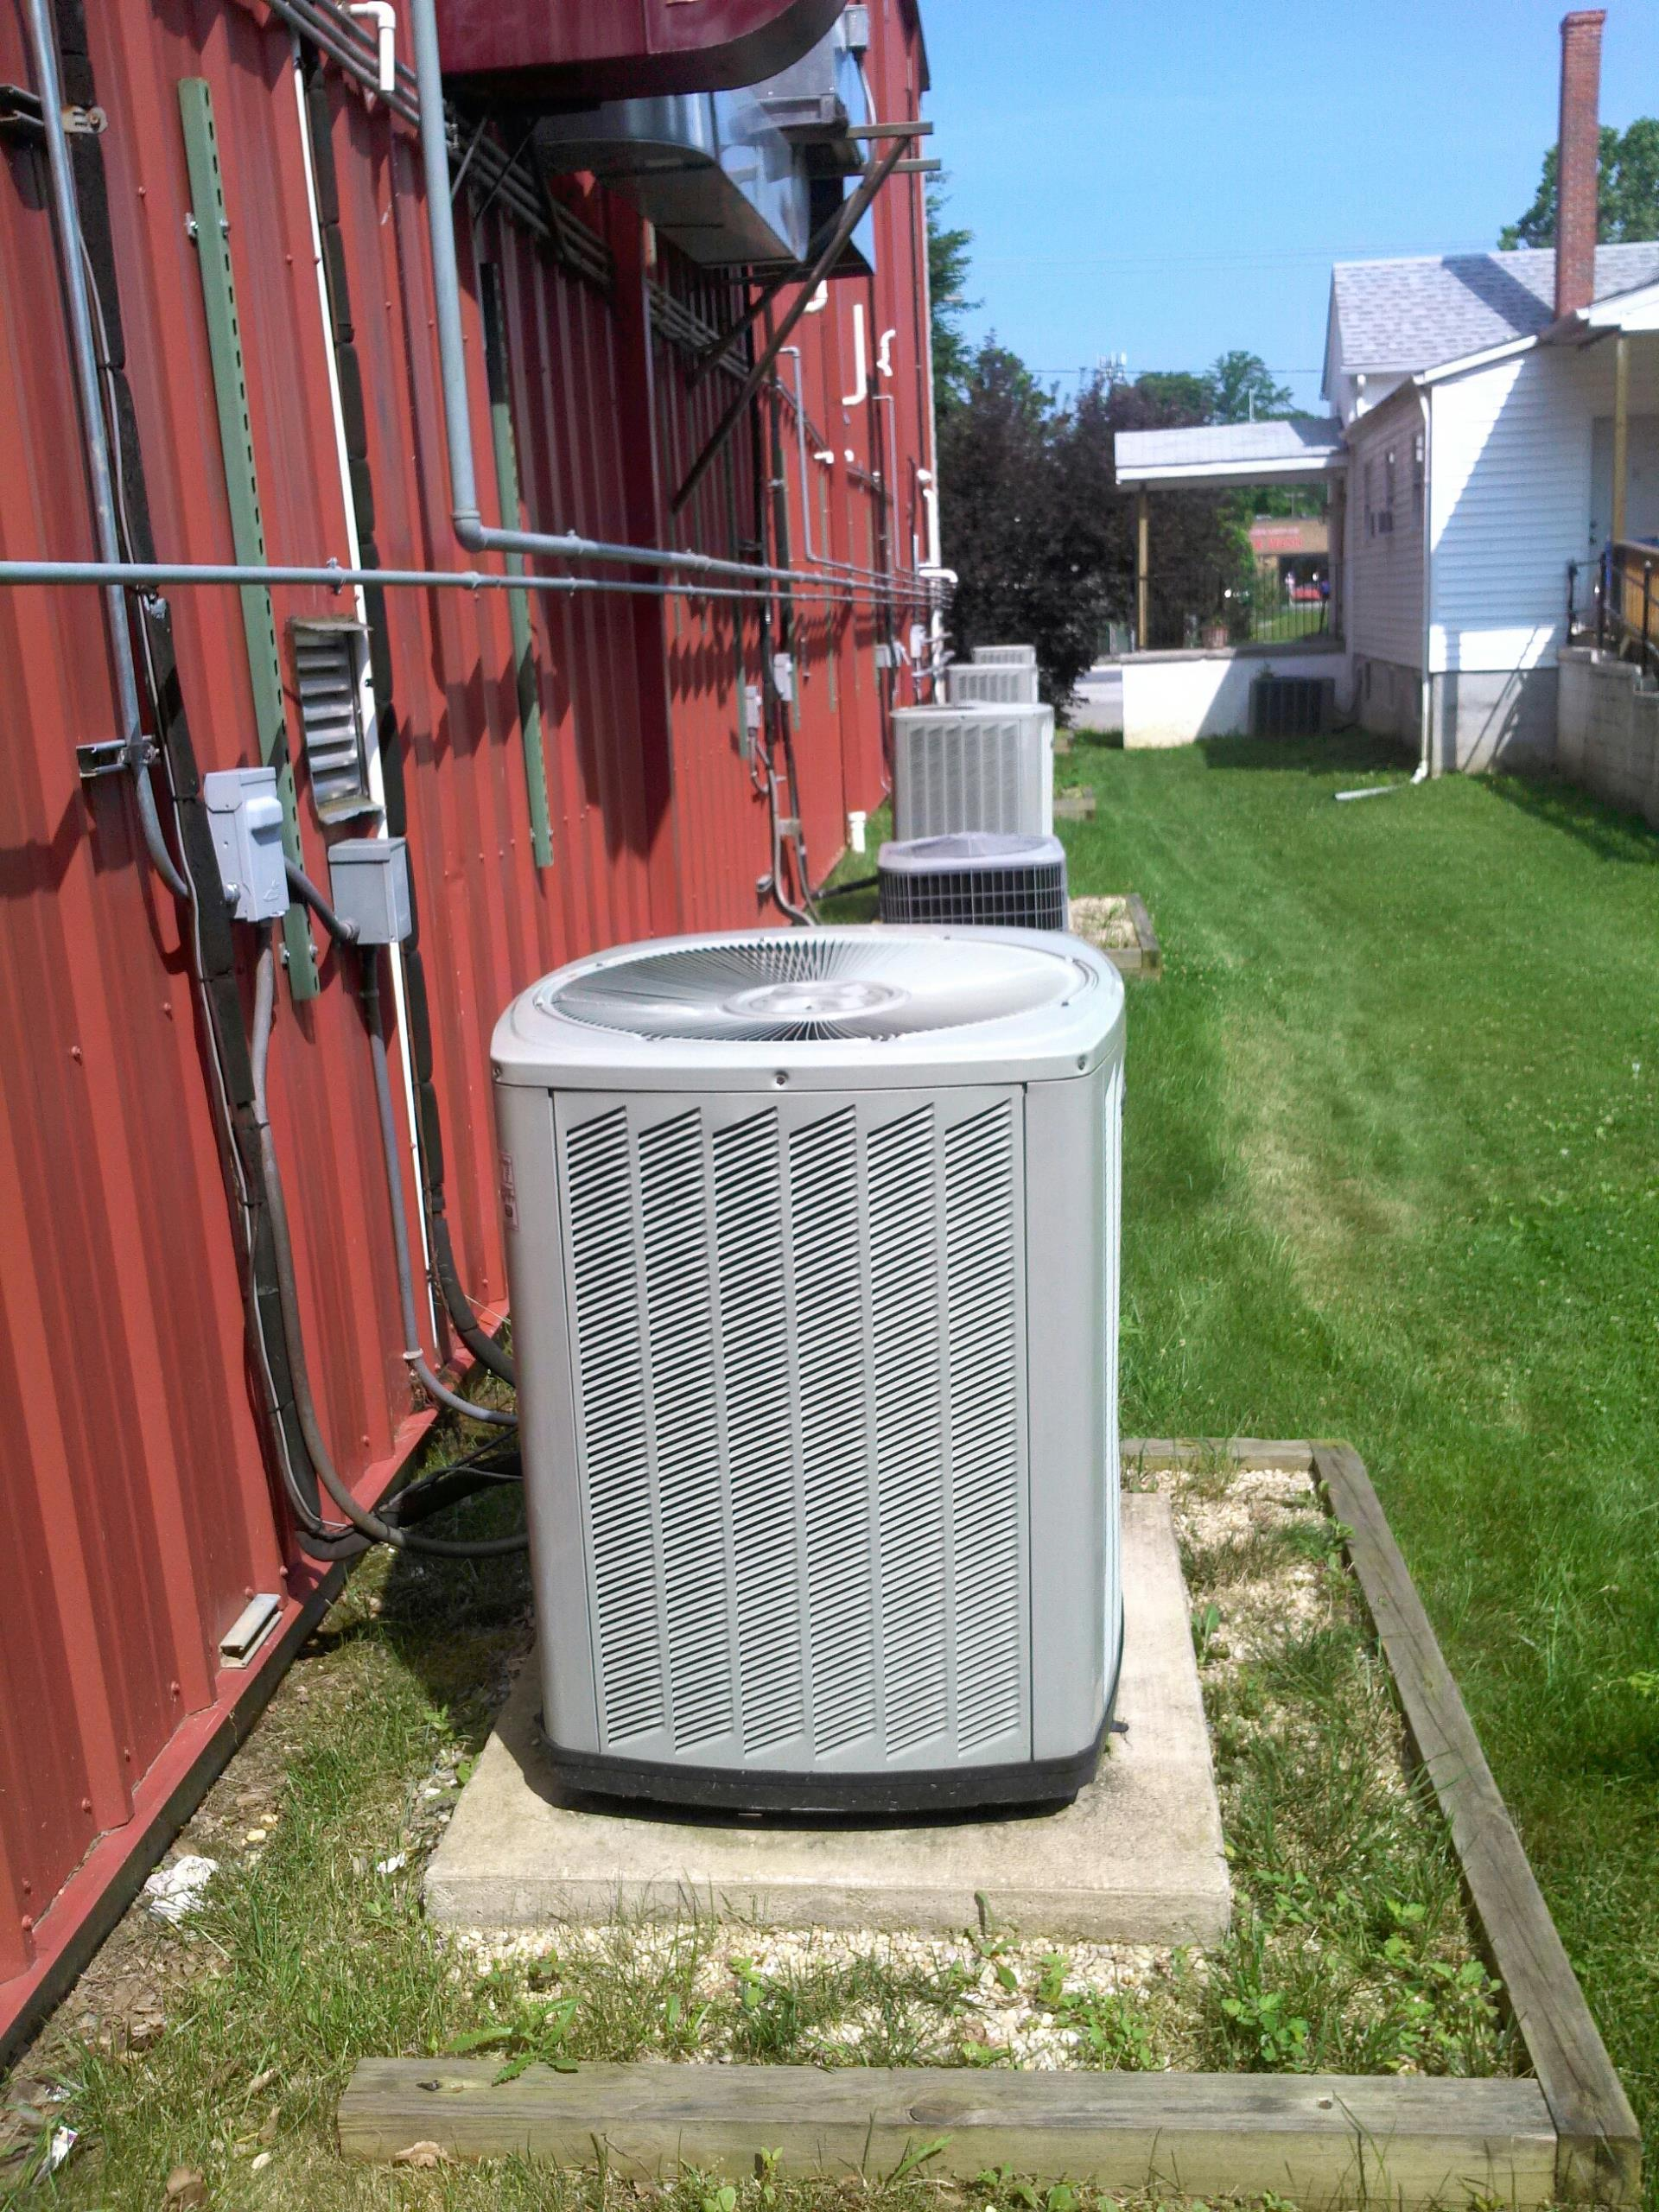 Gambrills, MD - Trane ac air conditioner repair service call in Gambrills Maryland 21054